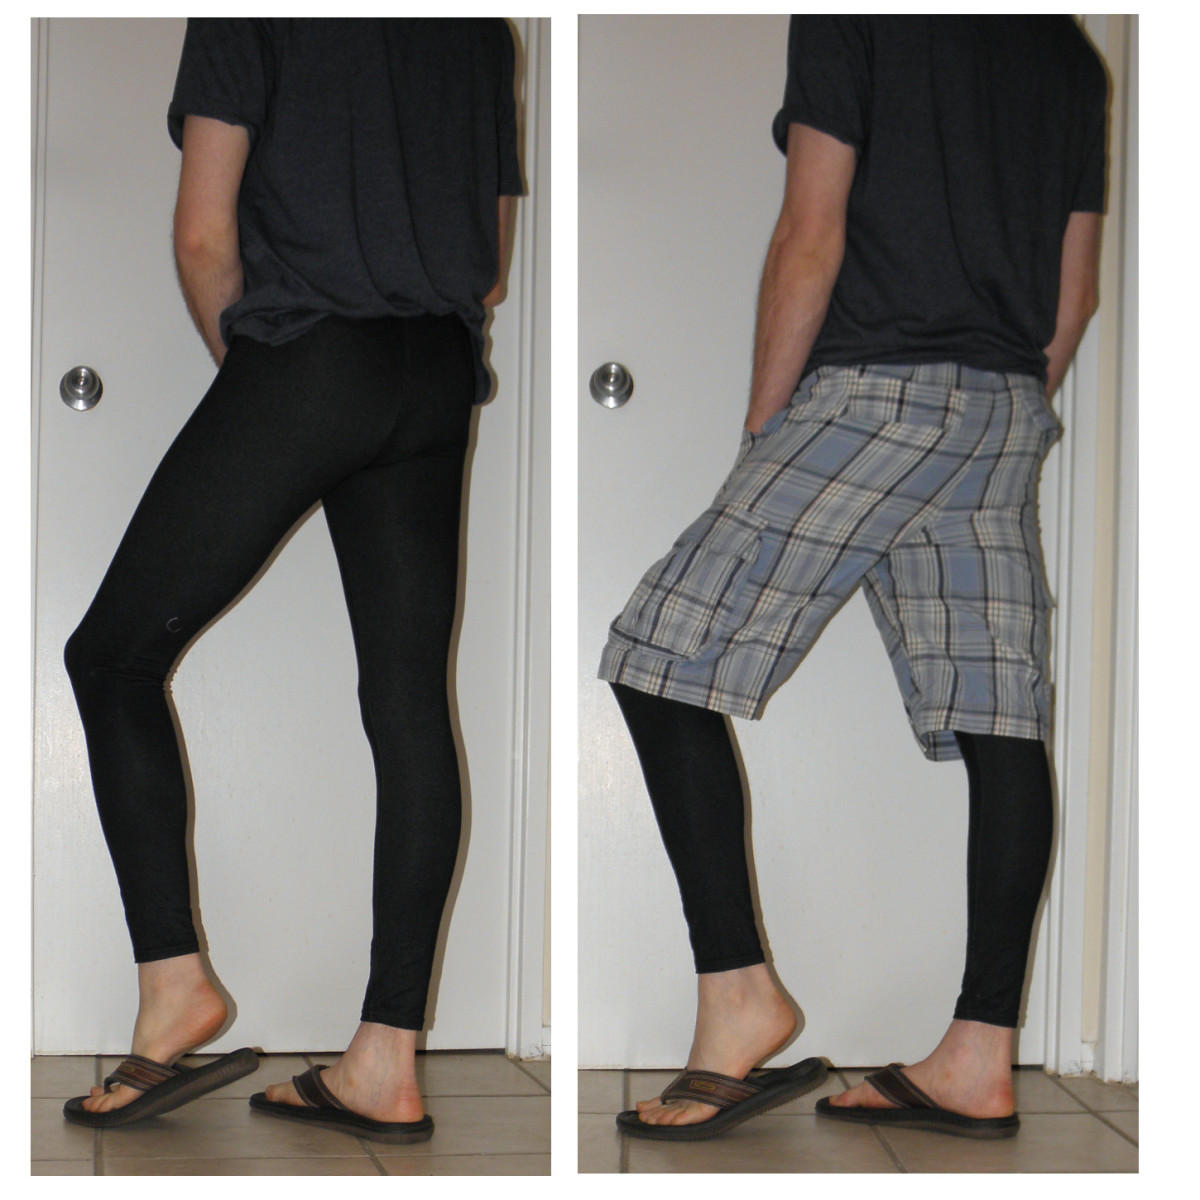 Mens Leggings Without Shorts